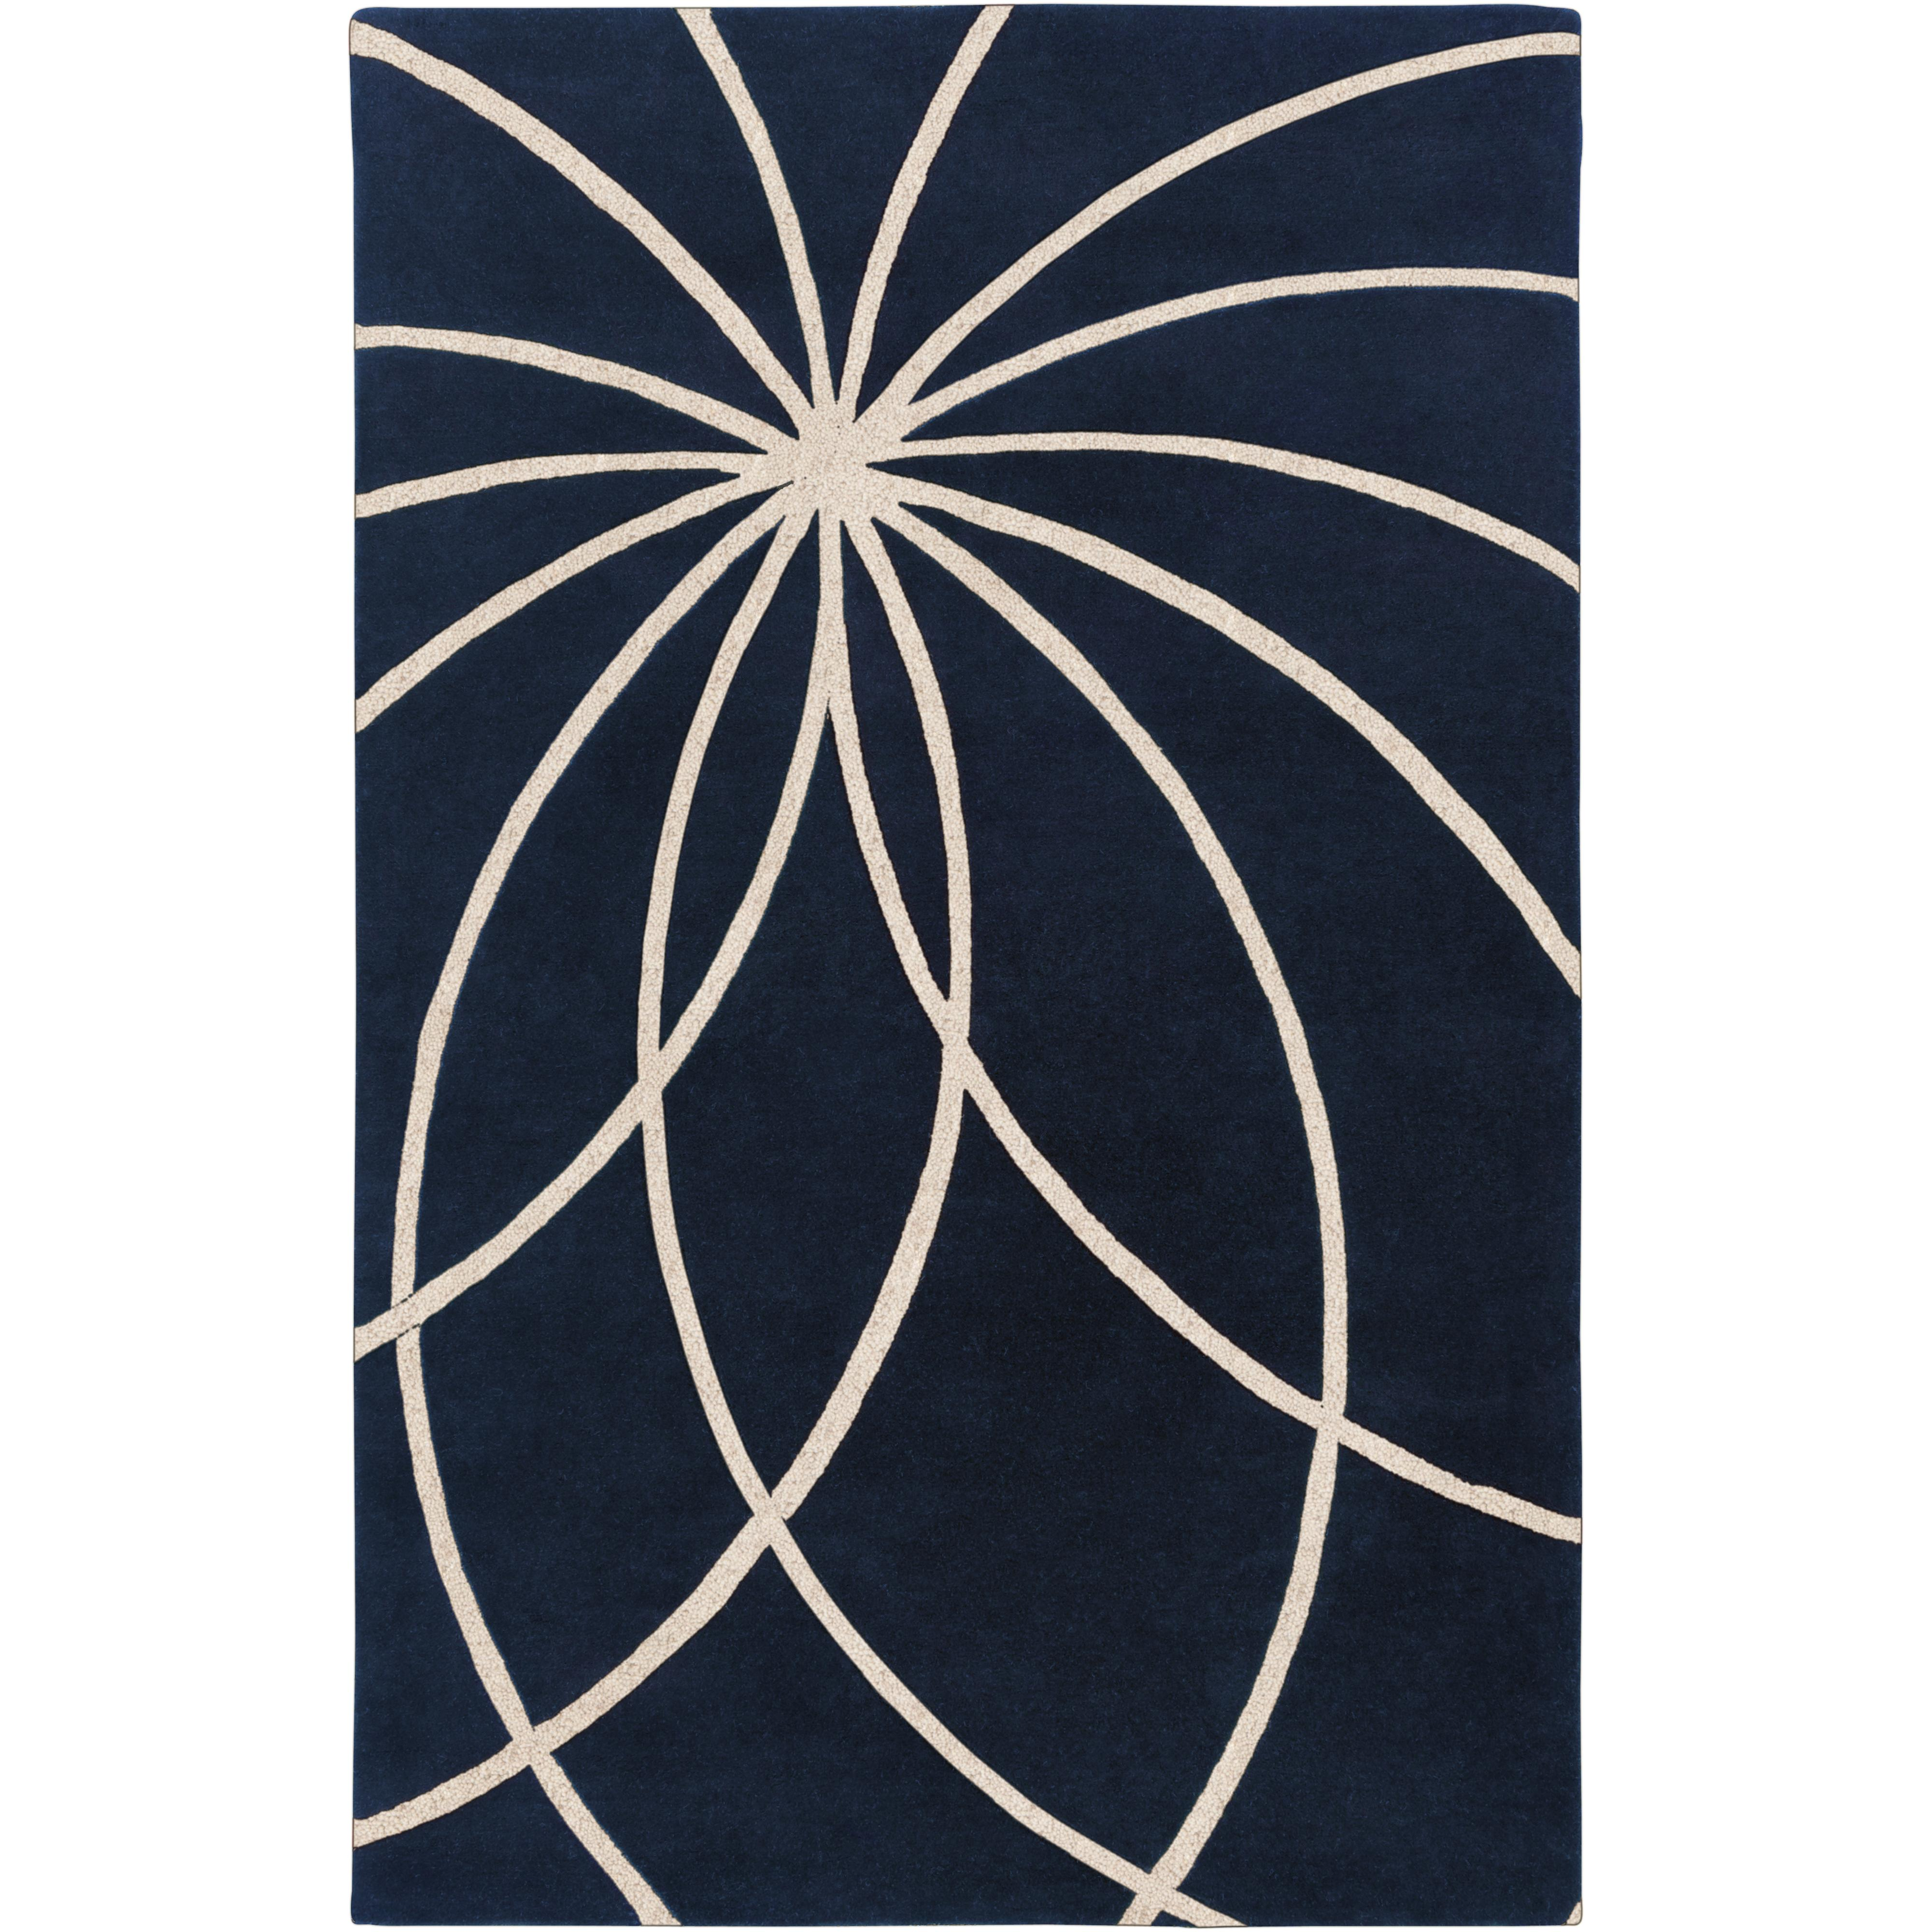 Surya Rugs Forum 6' x 9' - Item Number: FM7186-69